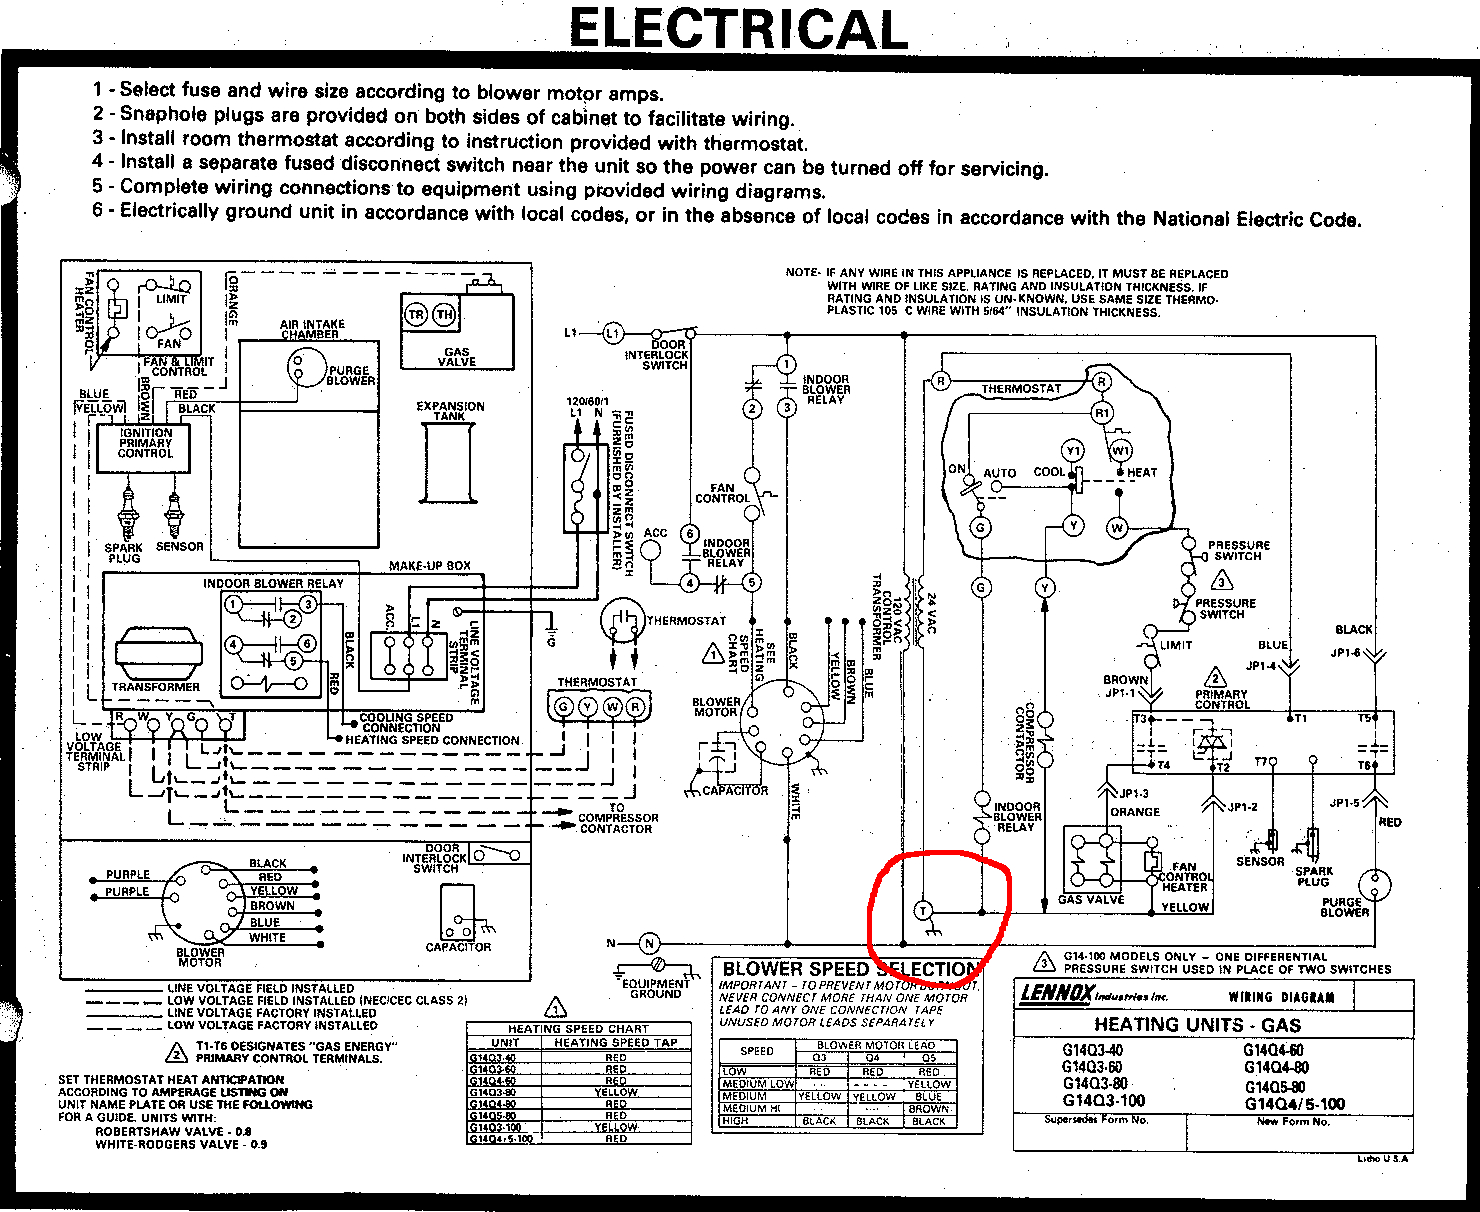 Furnace Wiring Diagram - Wiring Diagrams Click - Nest Thermostat Wiring Diagram Symbols